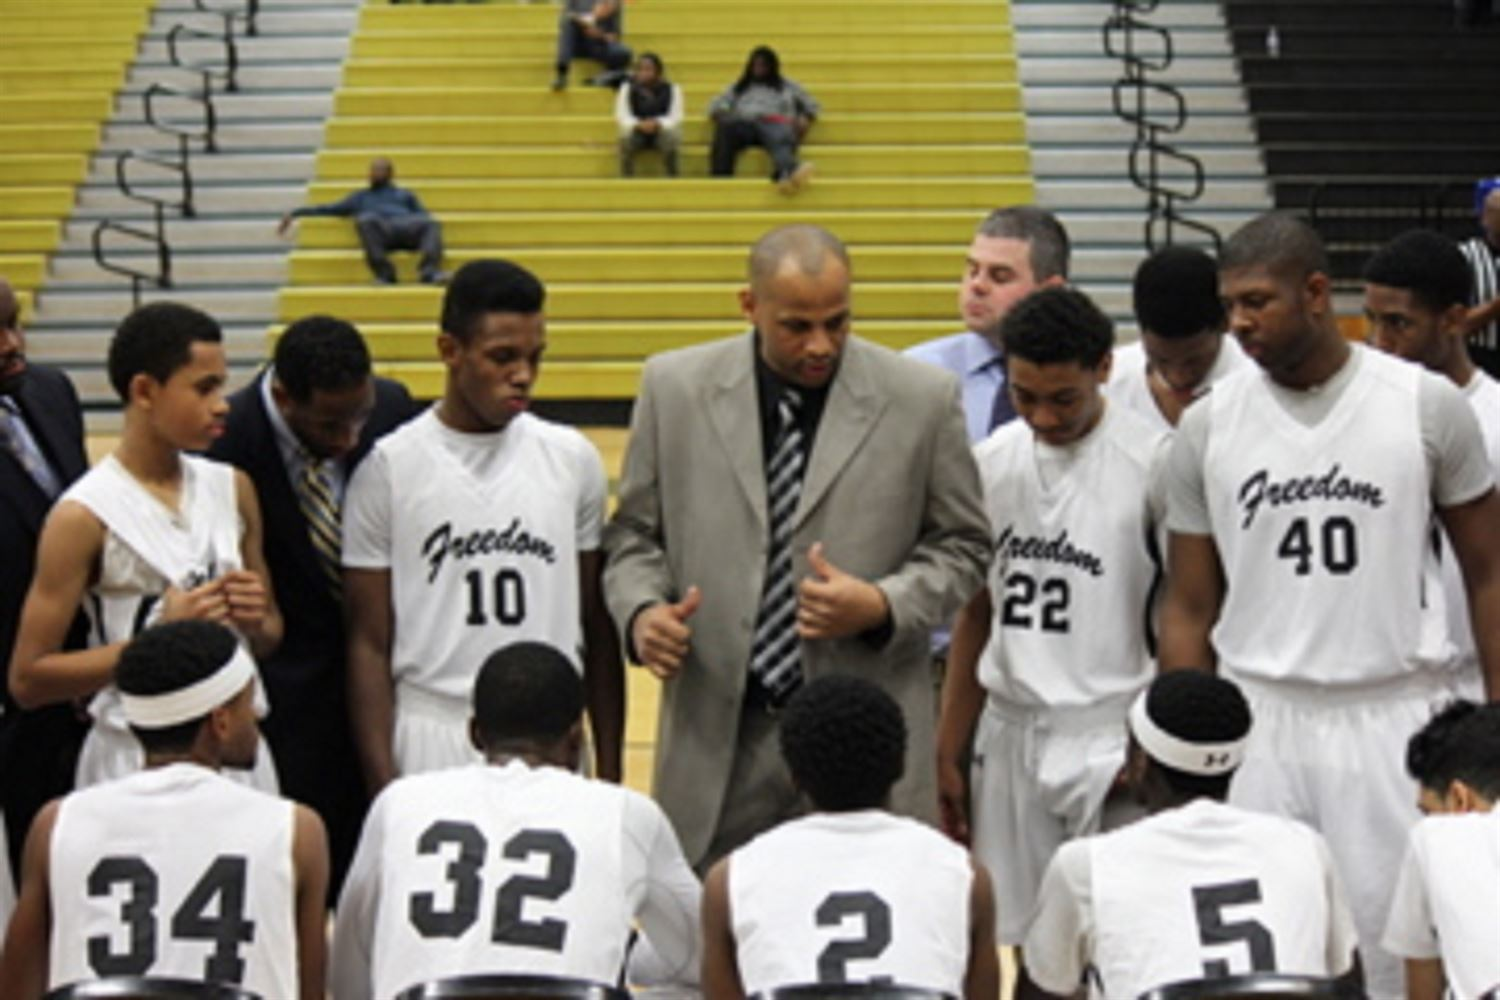 Freedom High School - Boys Varsity Basketball-FHS